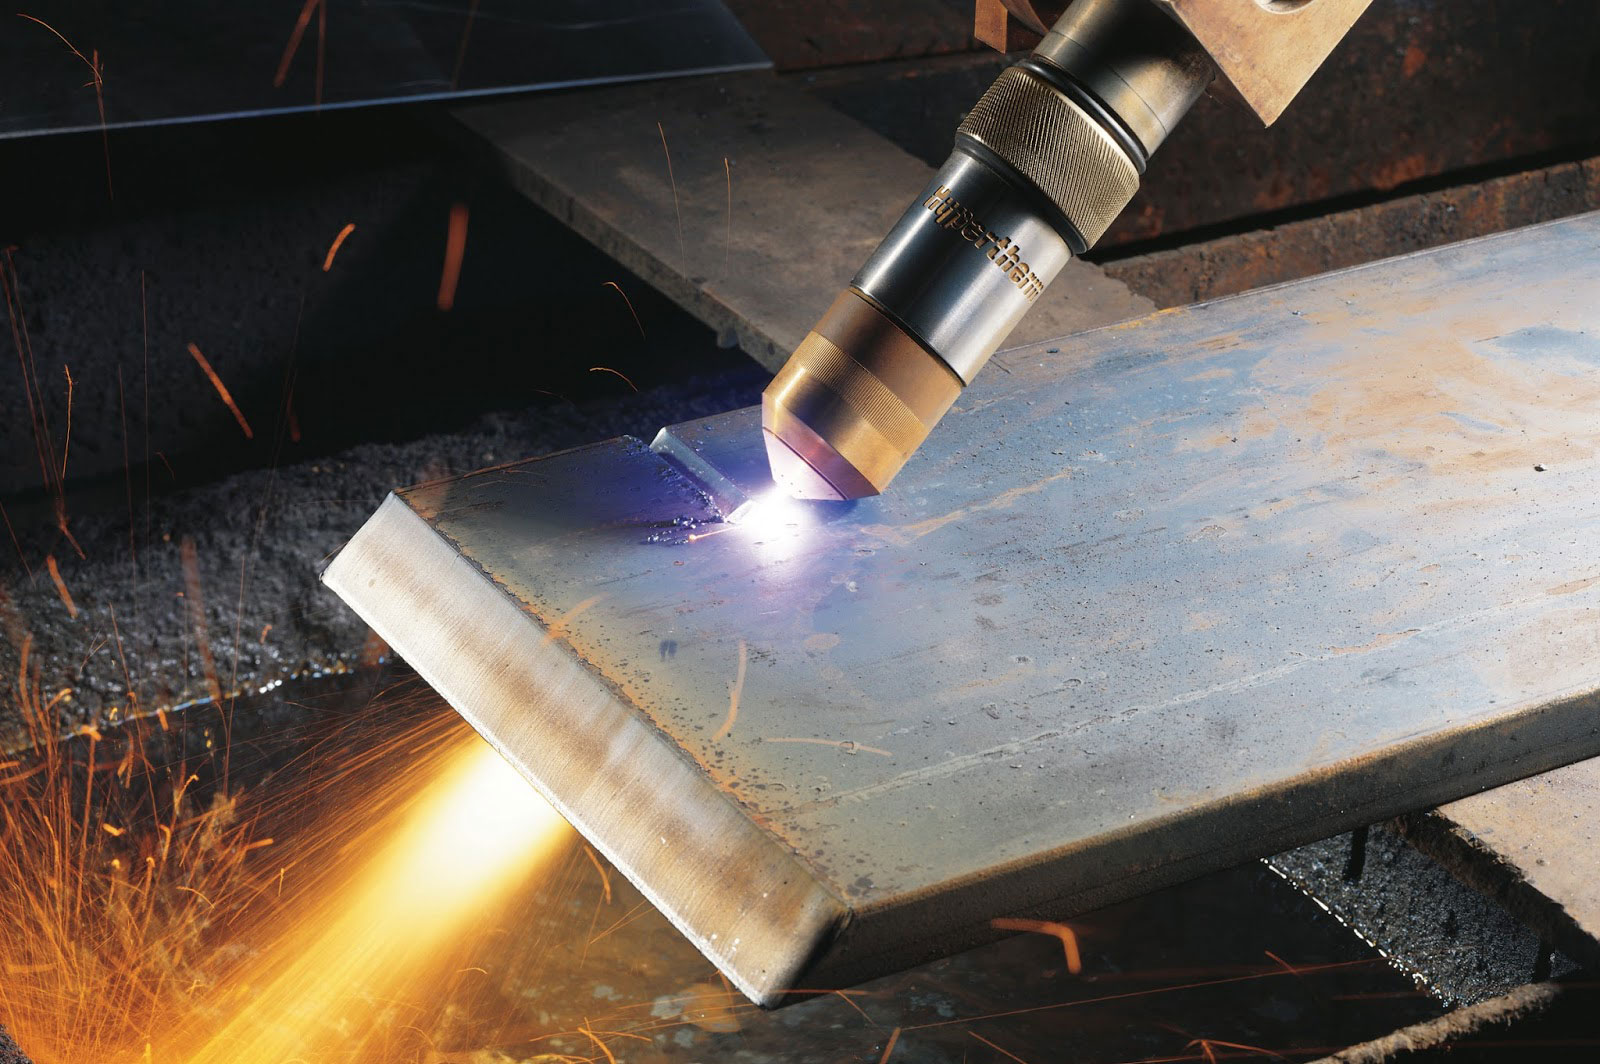 Evolution of Plasma Cutters